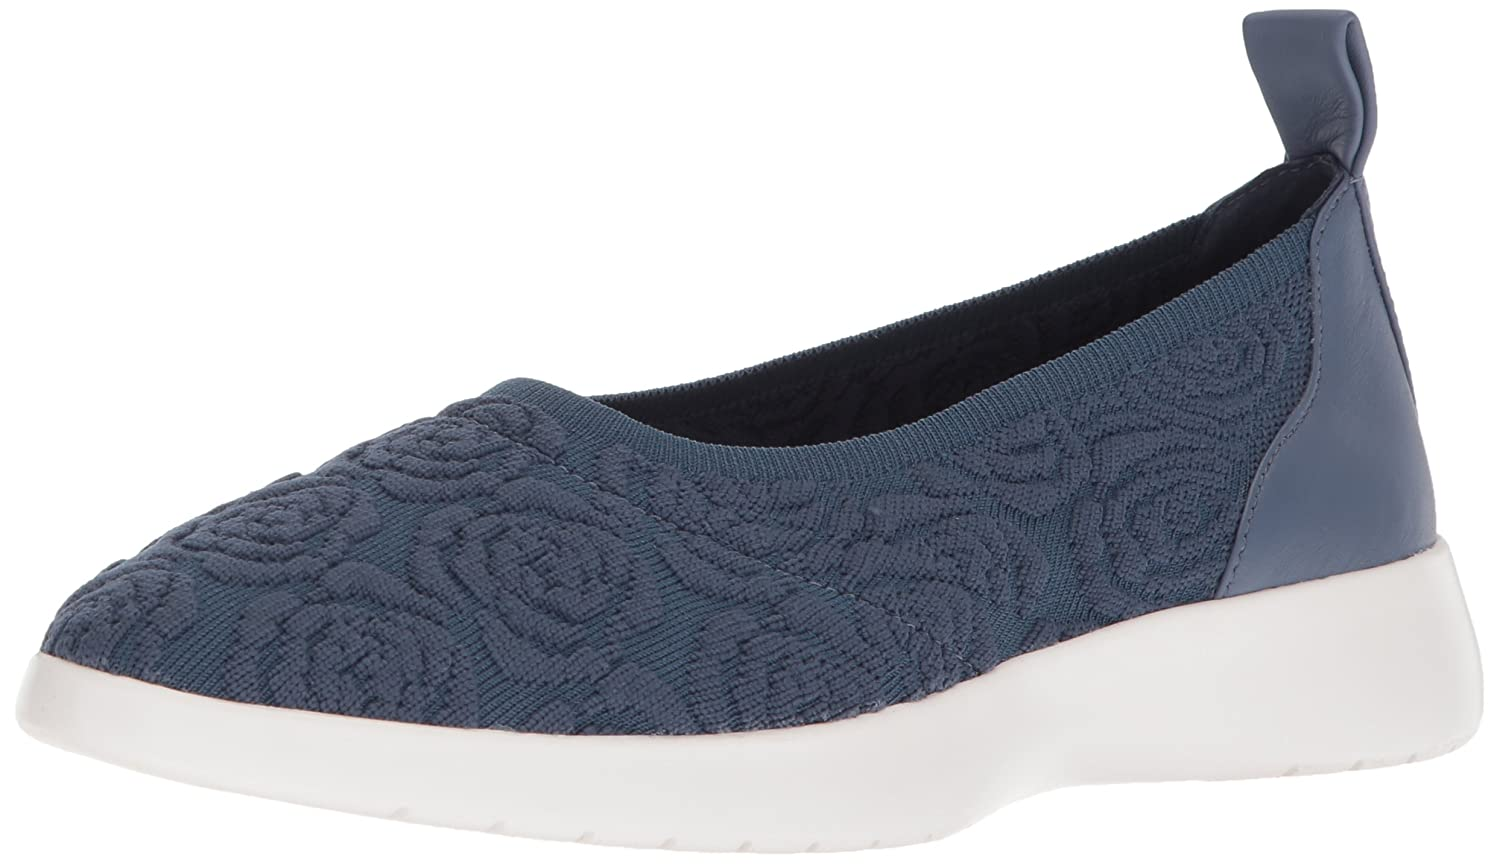 Taryn Rose Women's Daisy Knit Sneaker B074B5PWCN 8 M M US|Denim